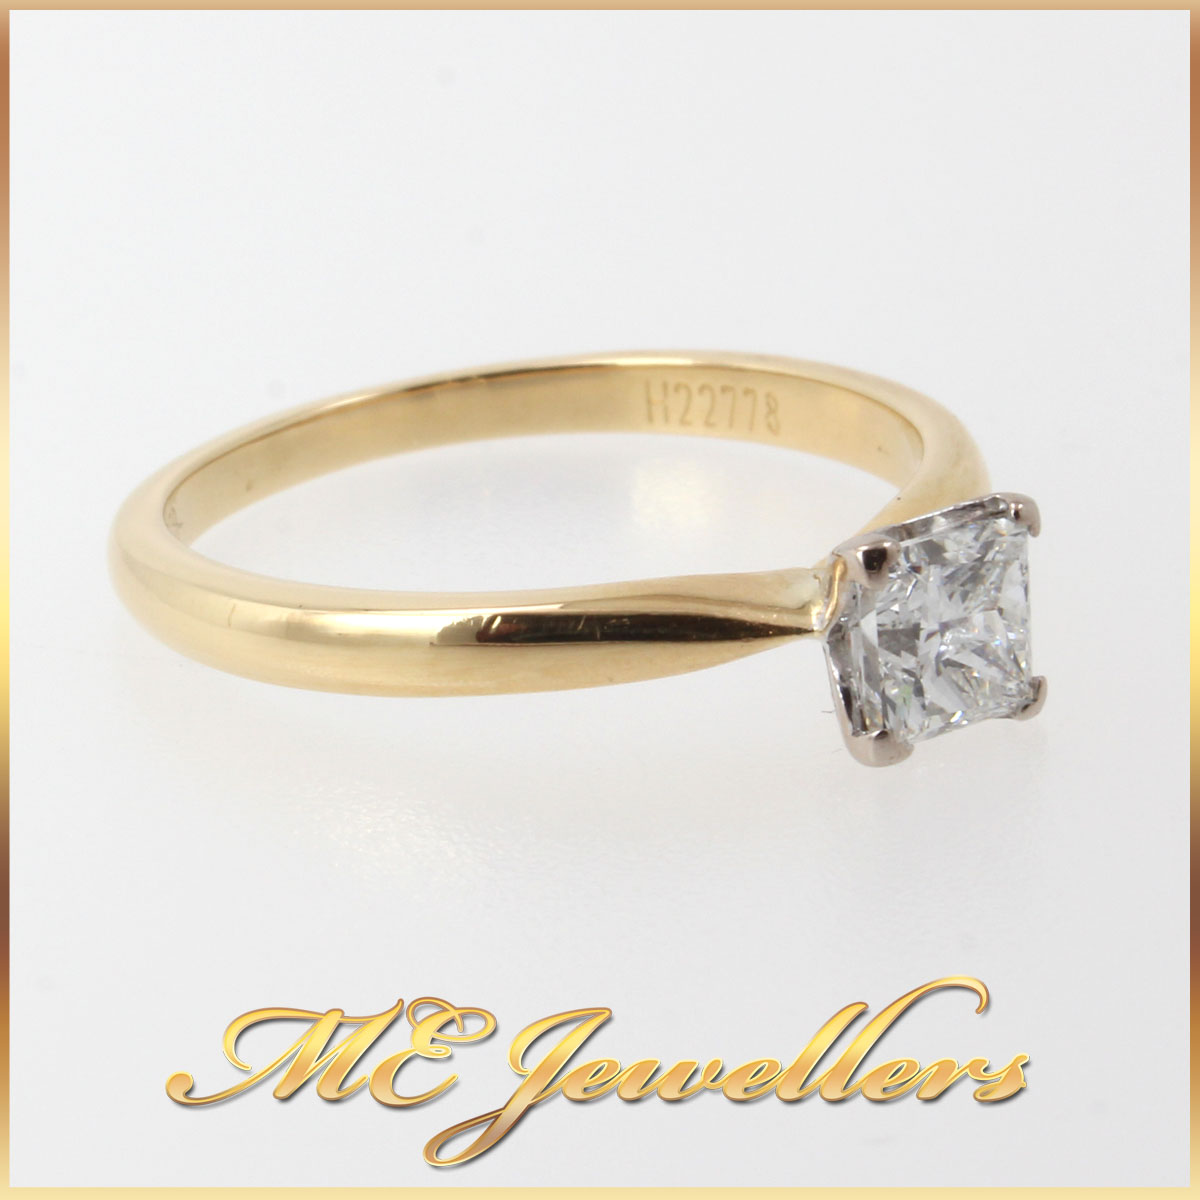 5116_ 0.50ct Princess Cut Diamond Engagement Ring 18k 18ct 750 Yellow Gold Size M (4)